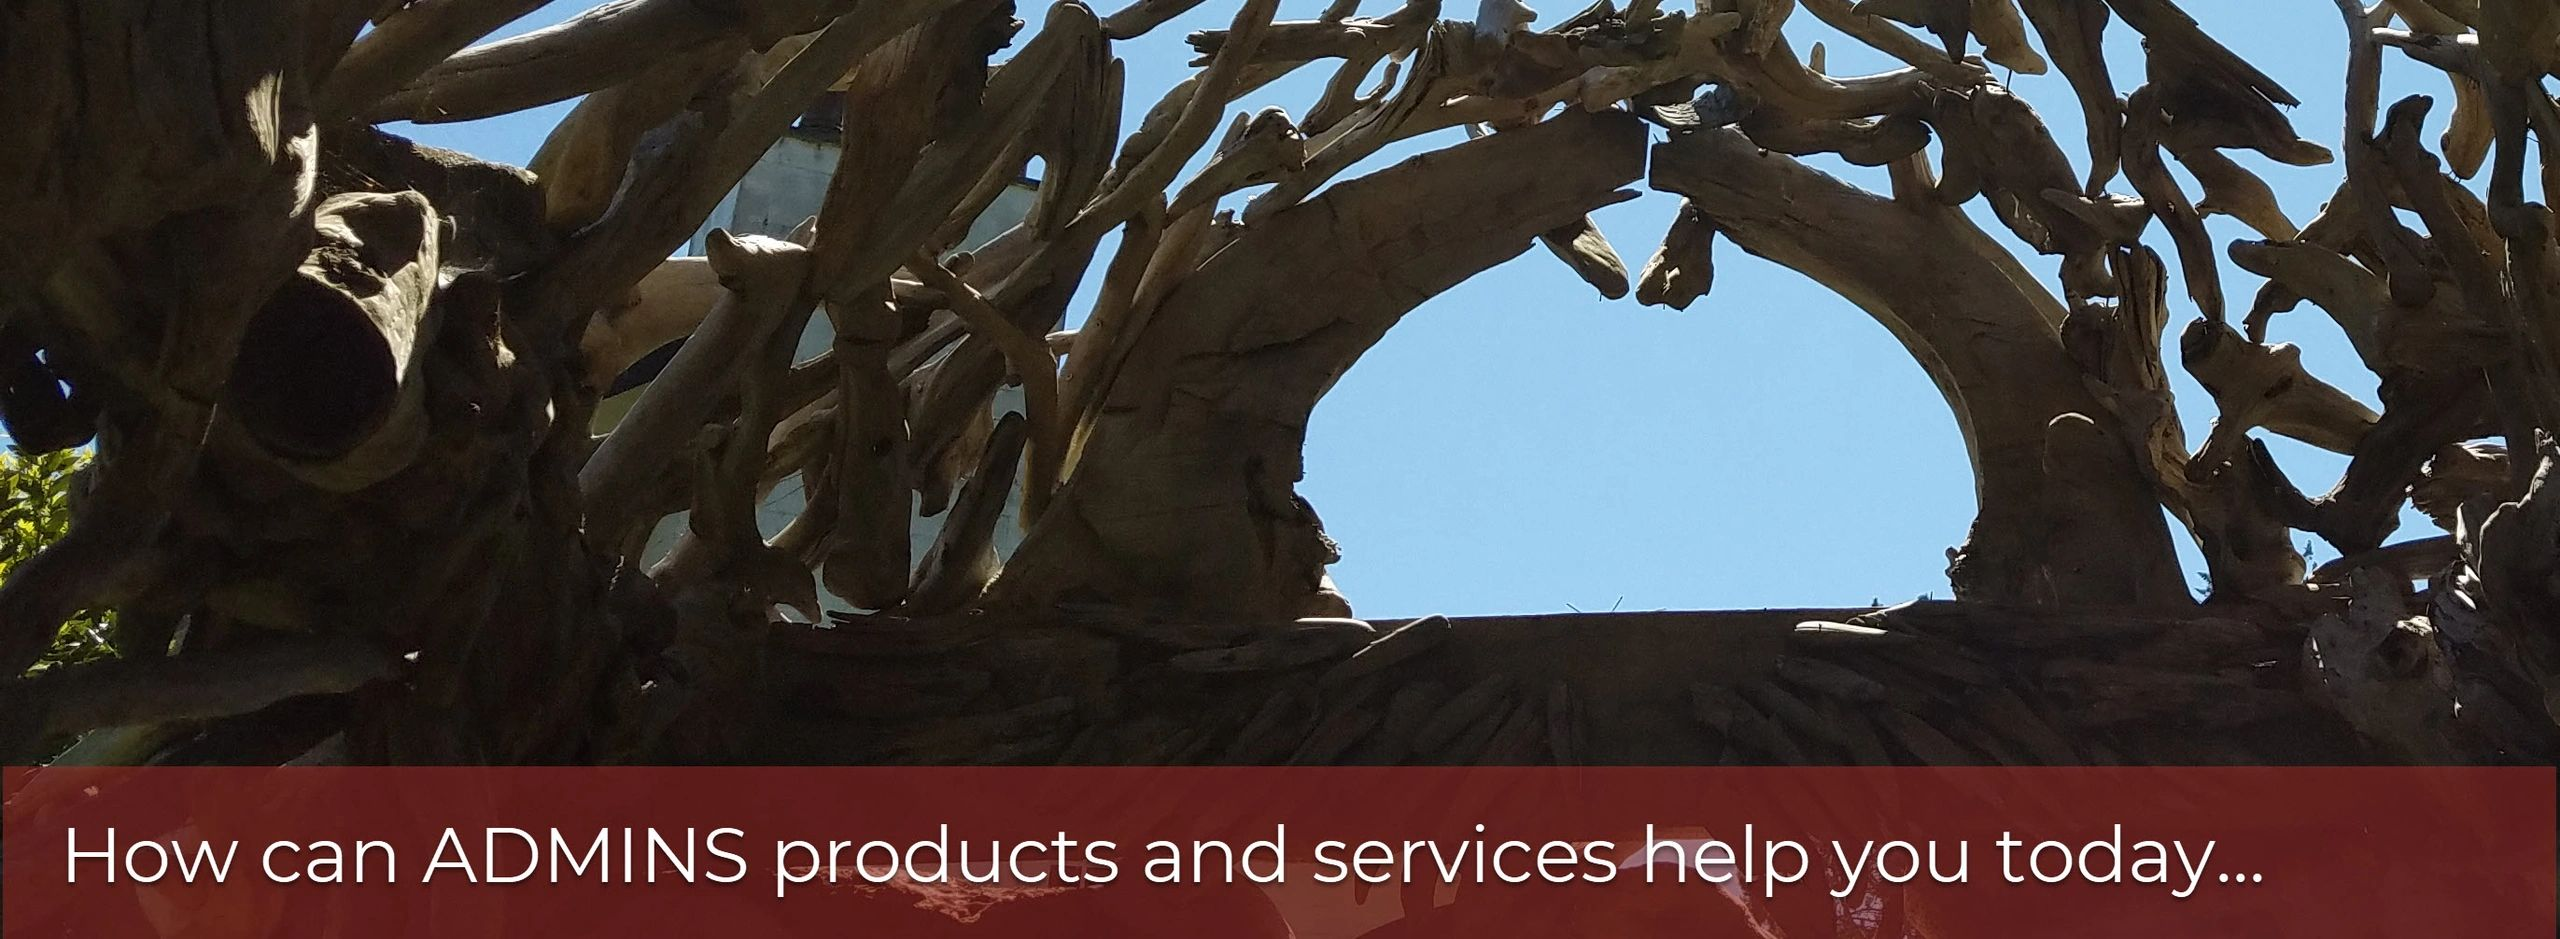 How can ADMINS products and services help you get through the tangle and into the bright sky